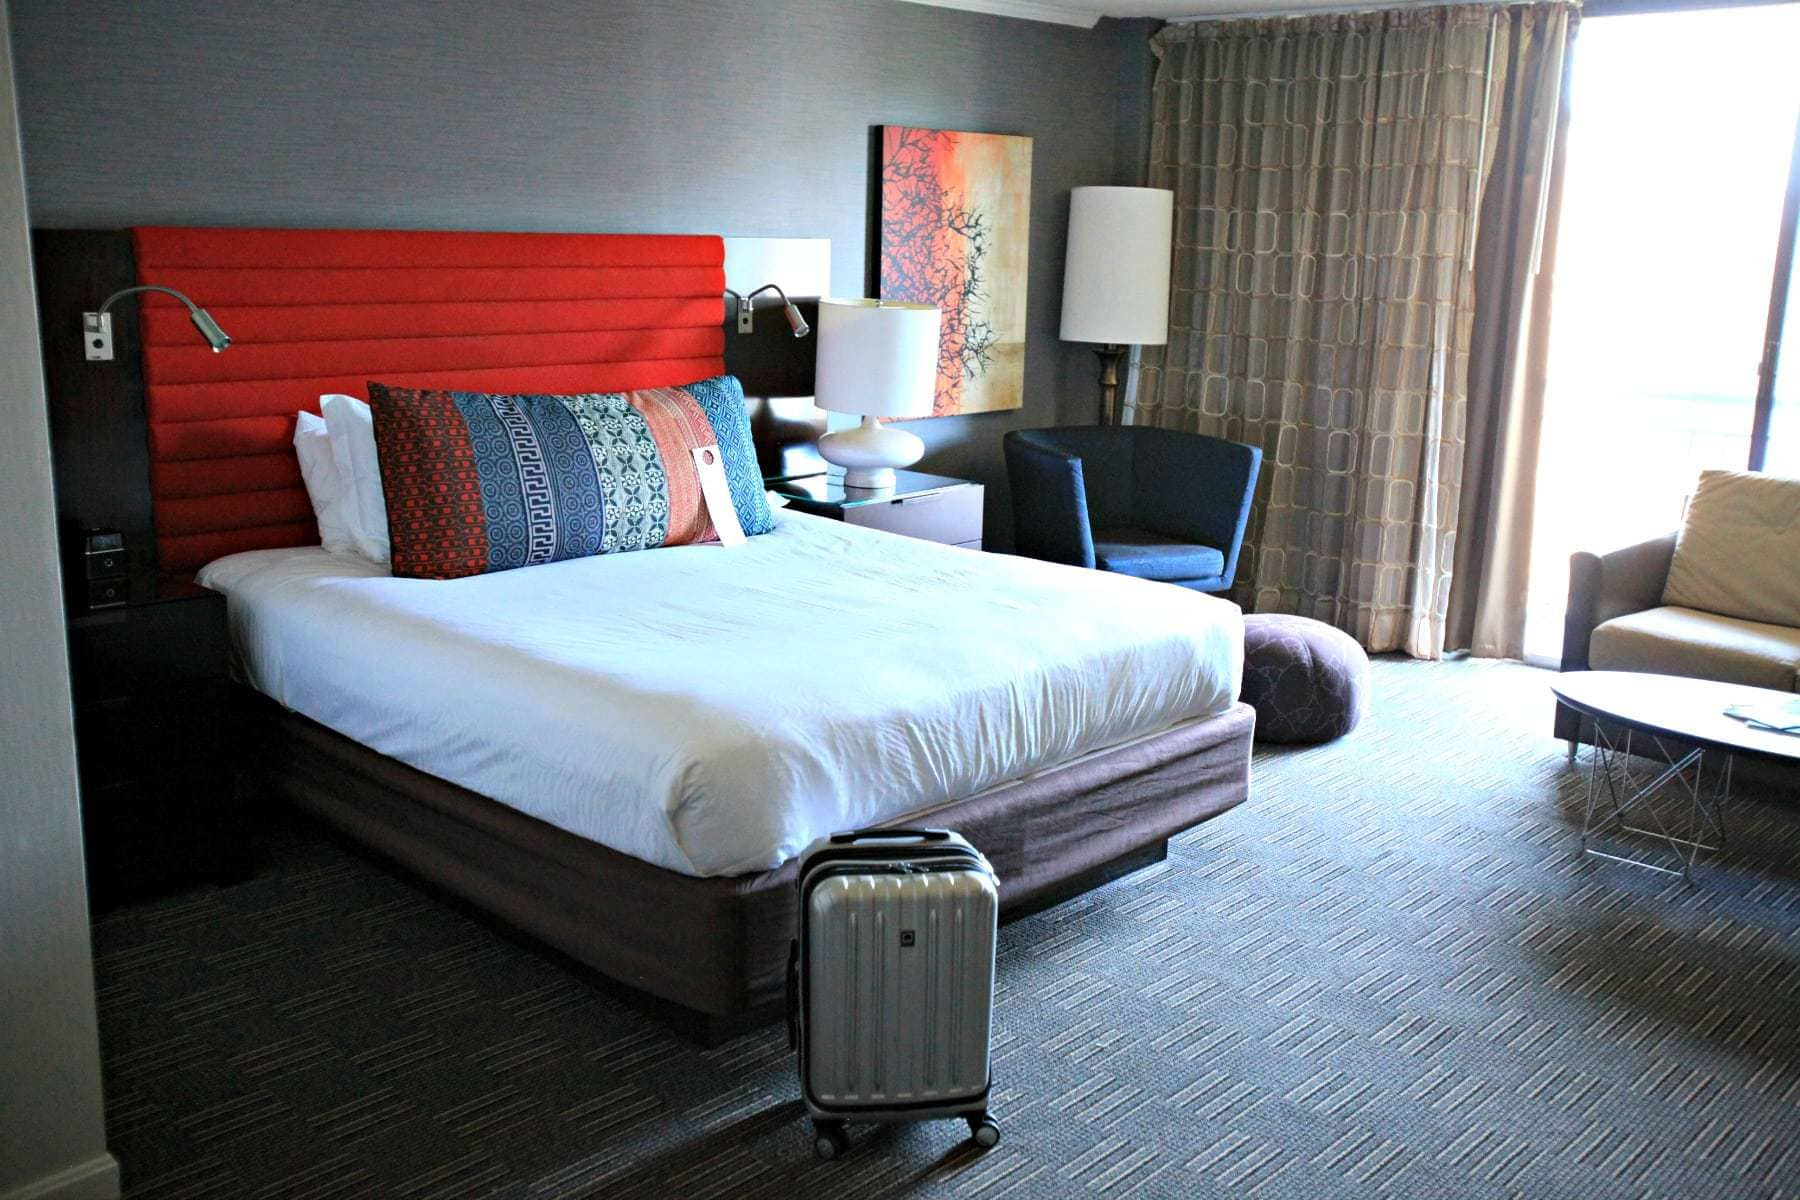 kimpton hotel madera deluxe king with balcony room